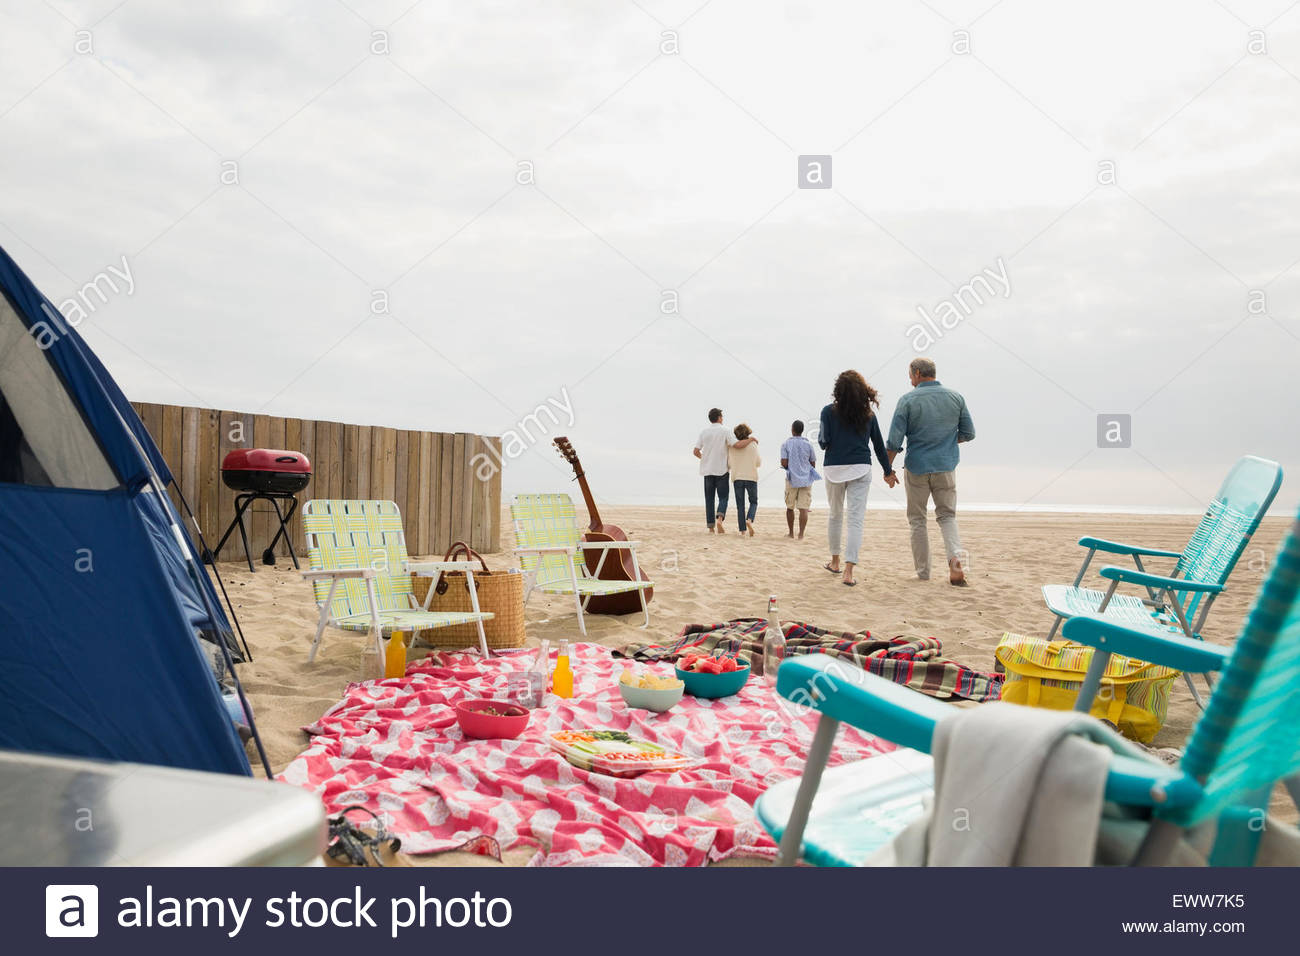 Friends walking away from beach picnic - Stock Image